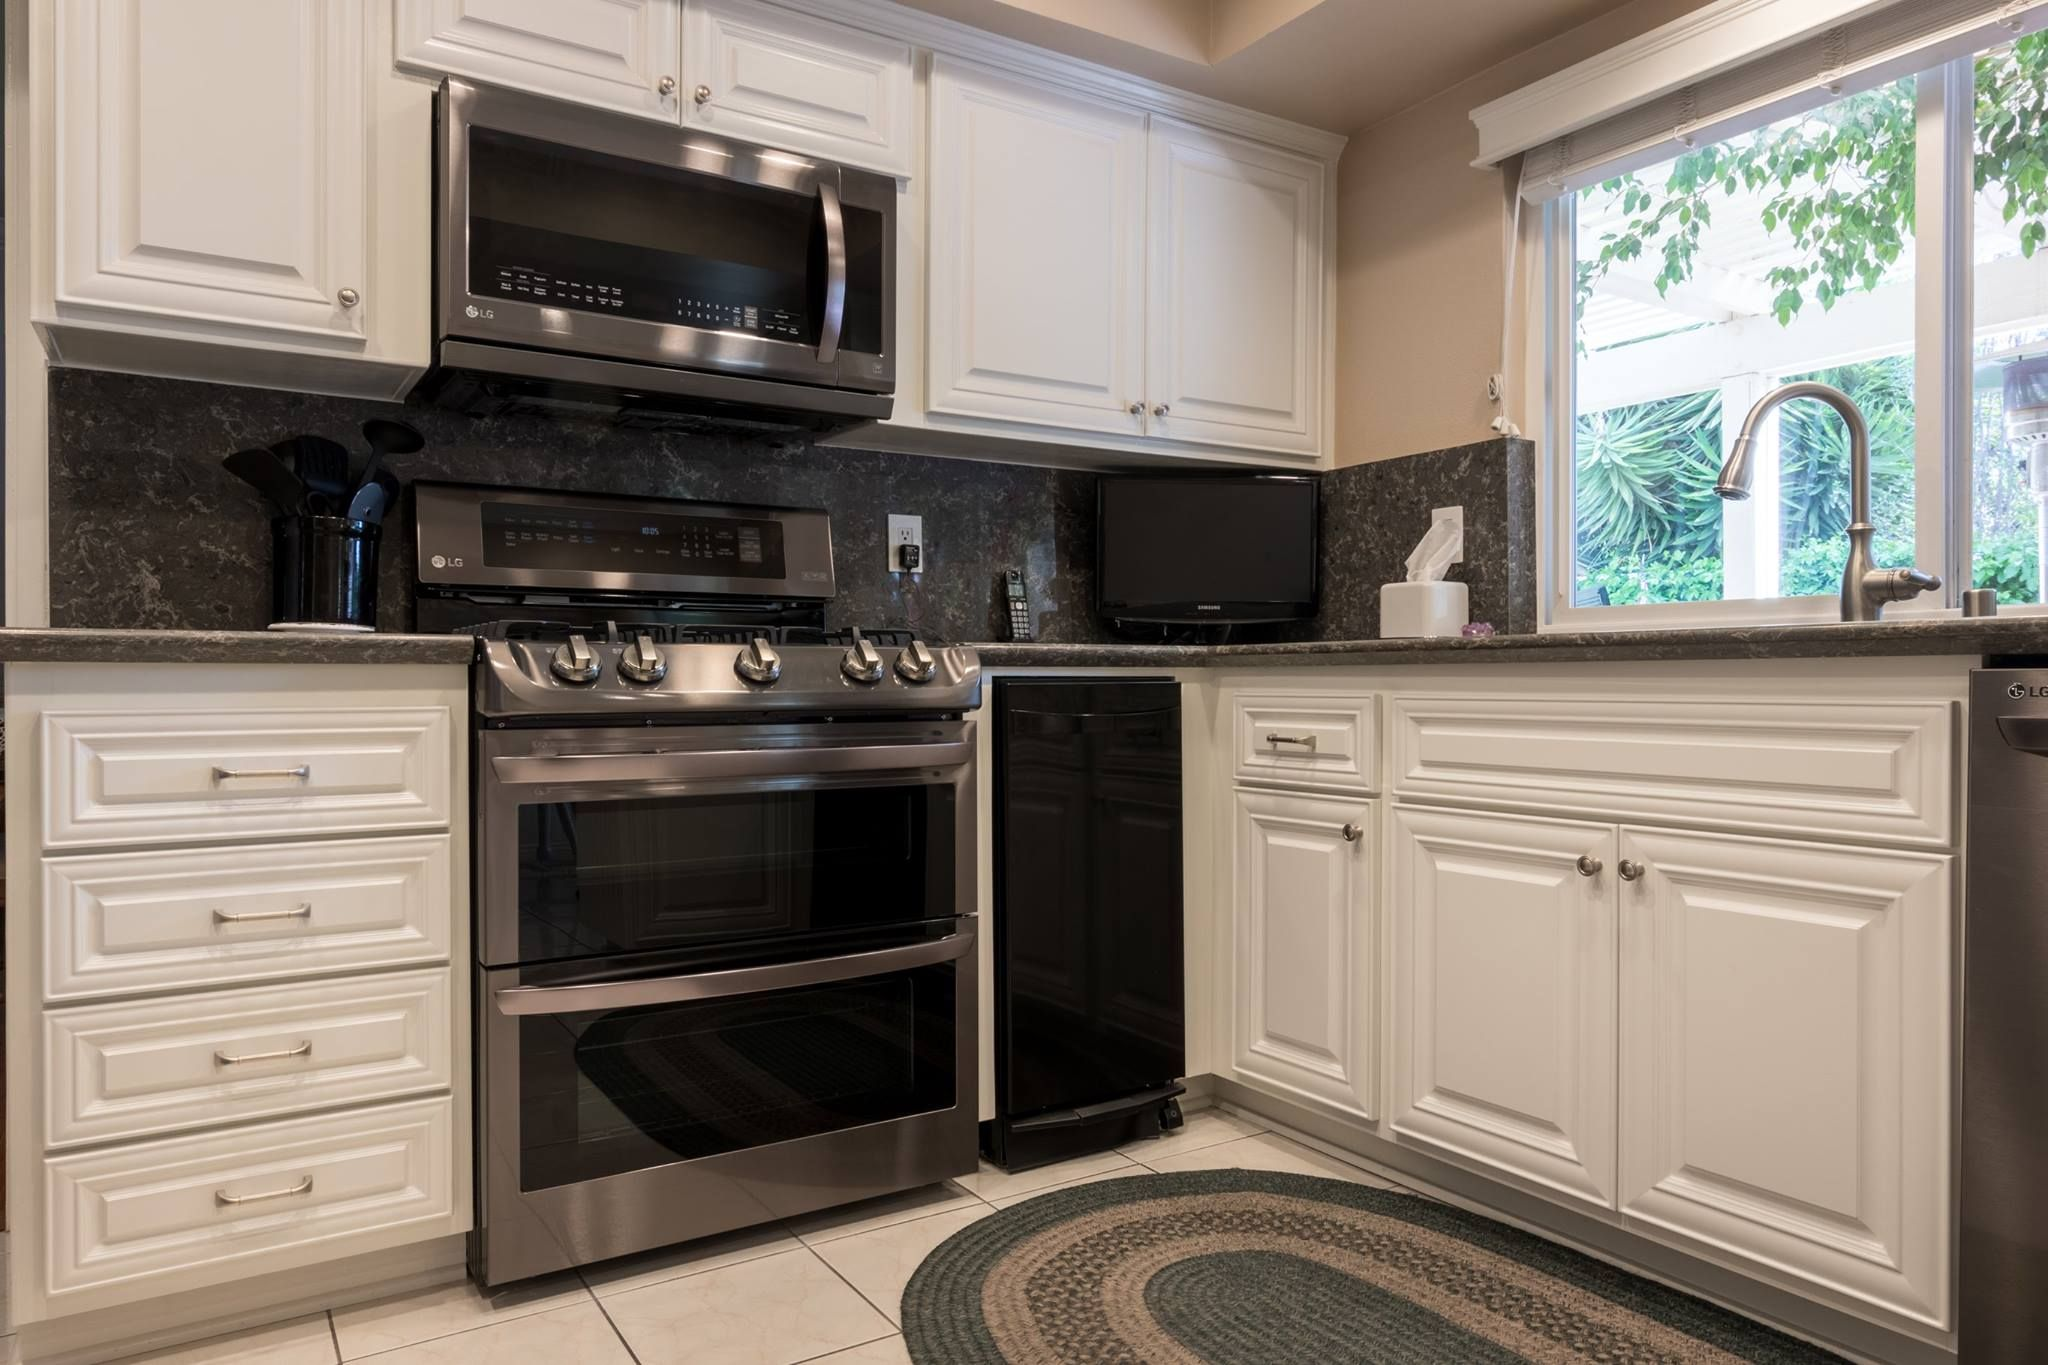 pin by 3 day kitchens on kitchen cabinet refacing ideas refacing kitchen cabinets kitchen on kitchen cabinets refacing id=74138